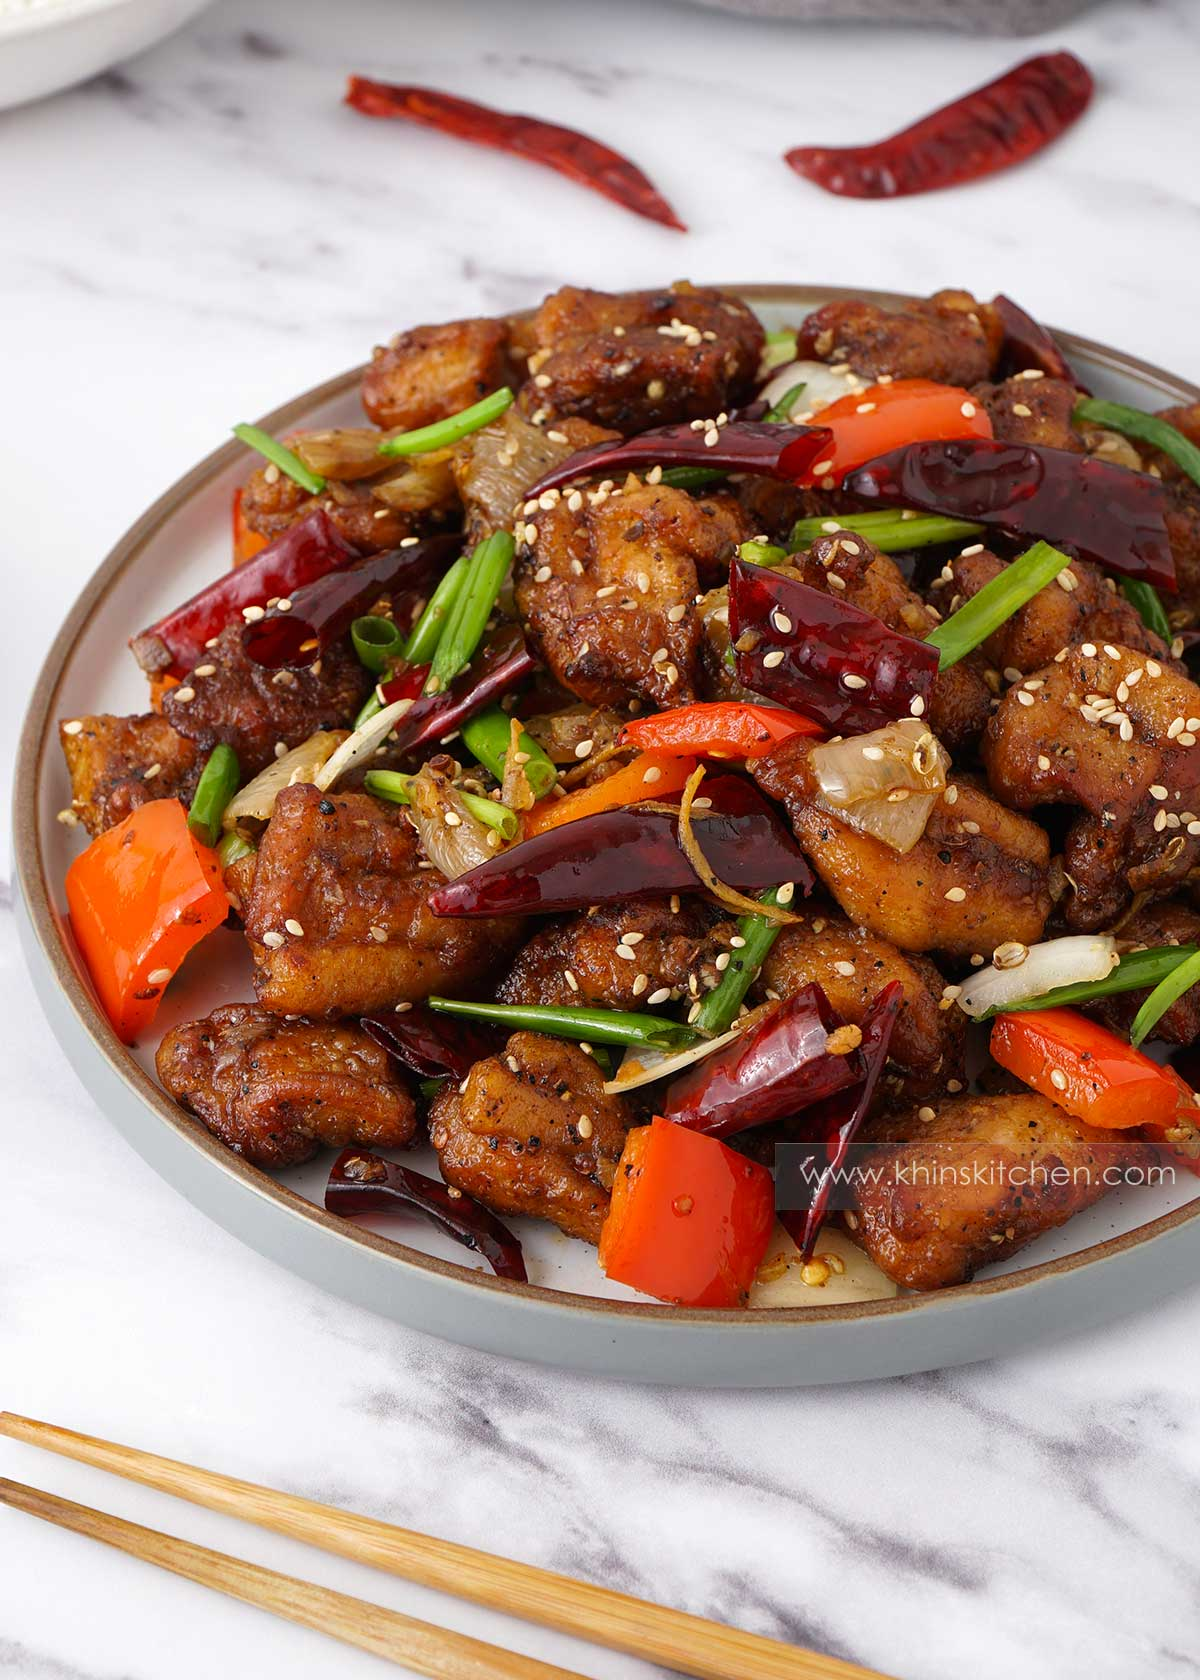 A white plate containing, stir fried chicken, onion, peppers, dry chillies, Sichuan peppercorns and sesame seeds.